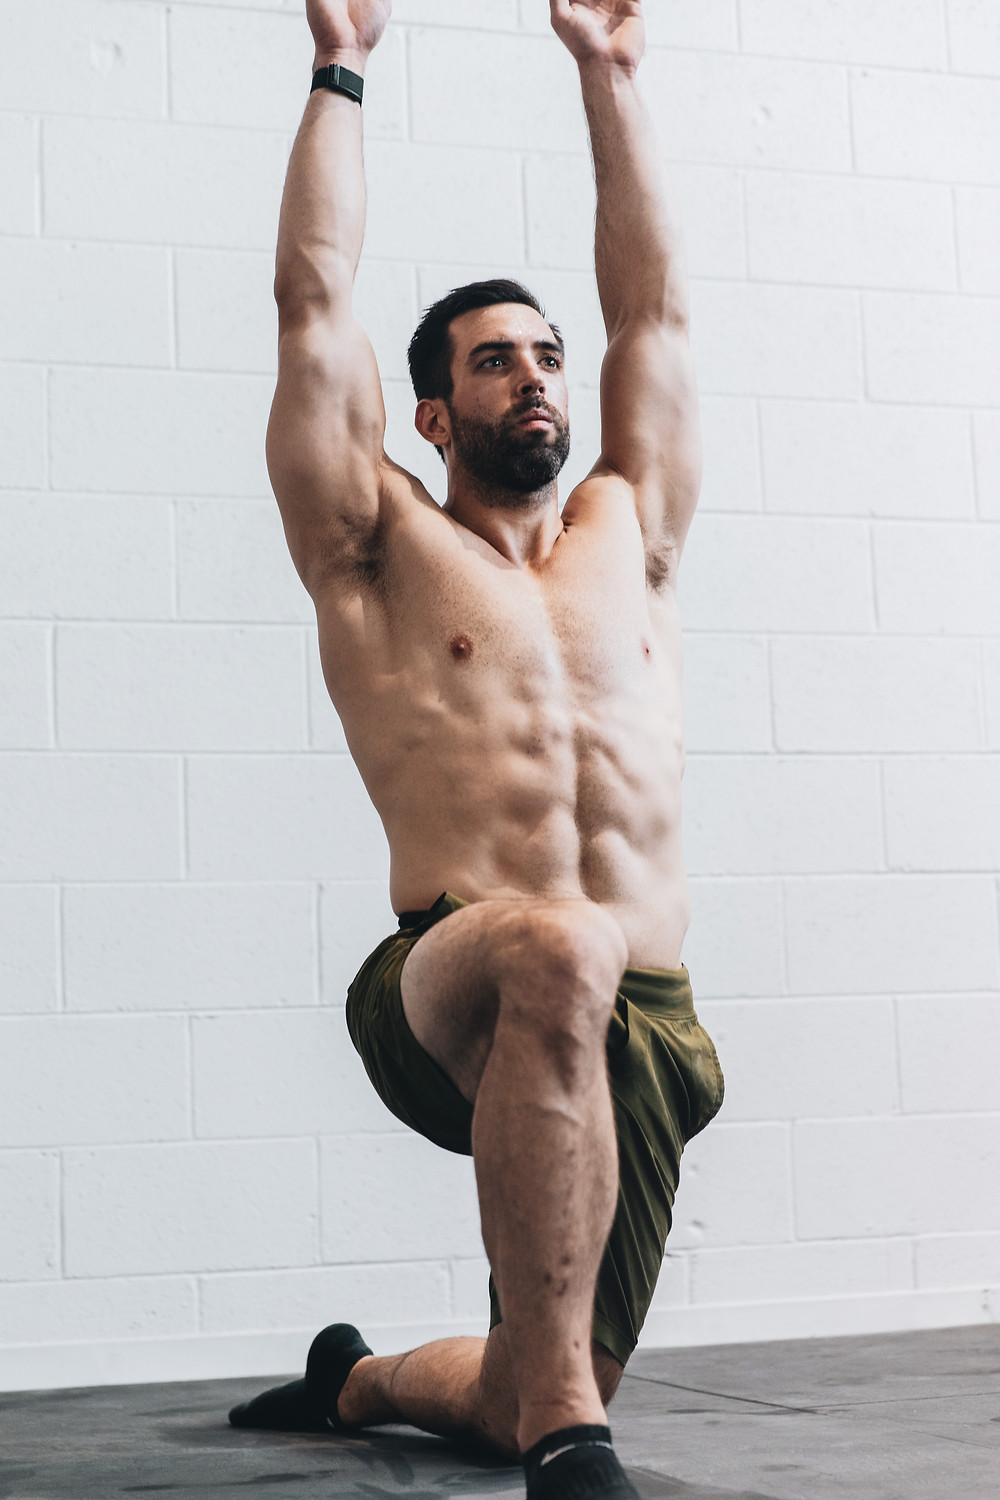 A muscular man on his knee holding the Runner's Lunge yoga pose for 30 seconds.